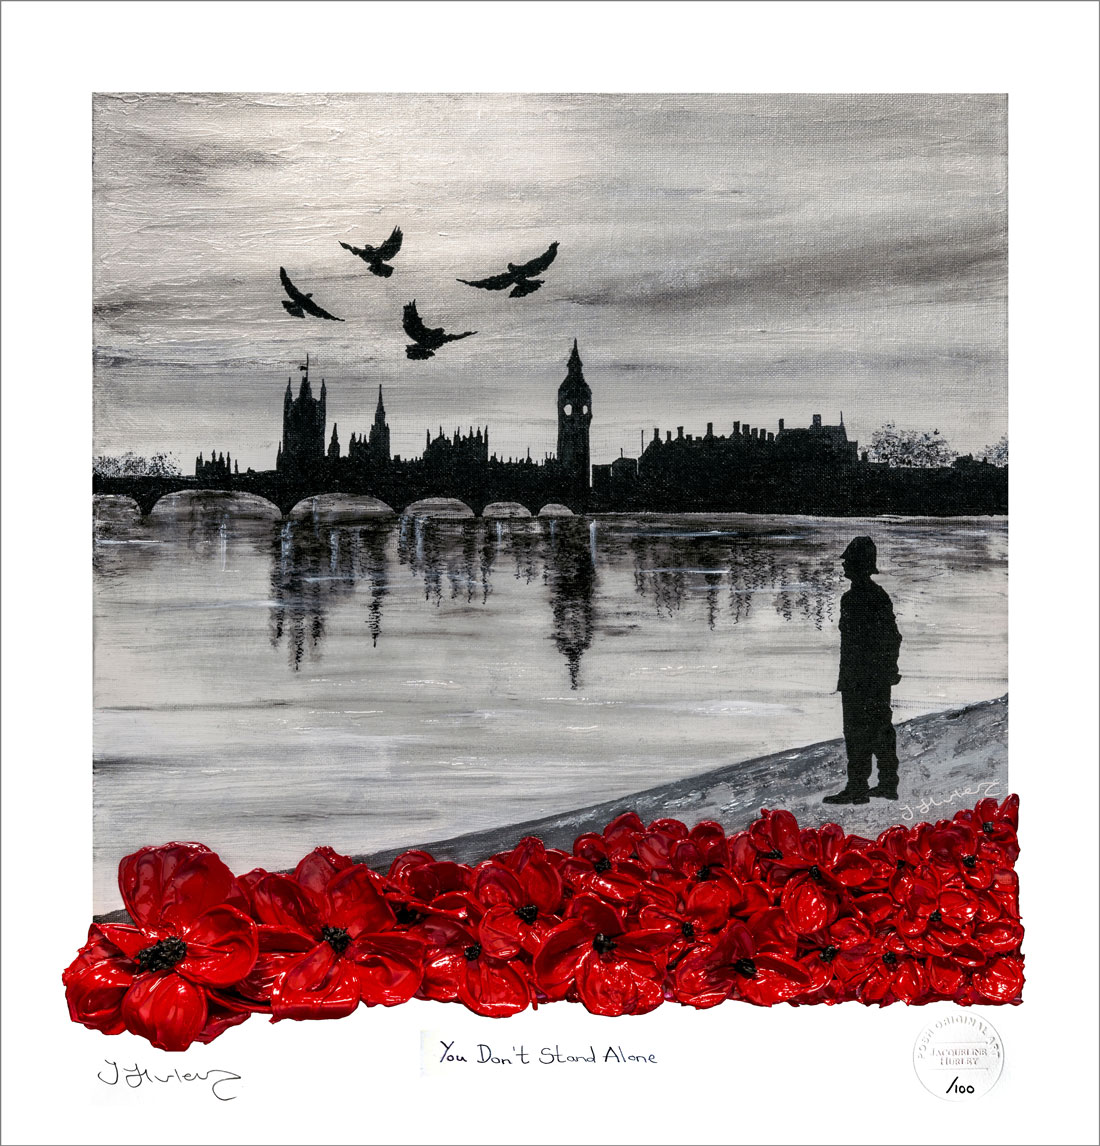 You Don't Stand Alone - Signed Limited Edition Giclée Print